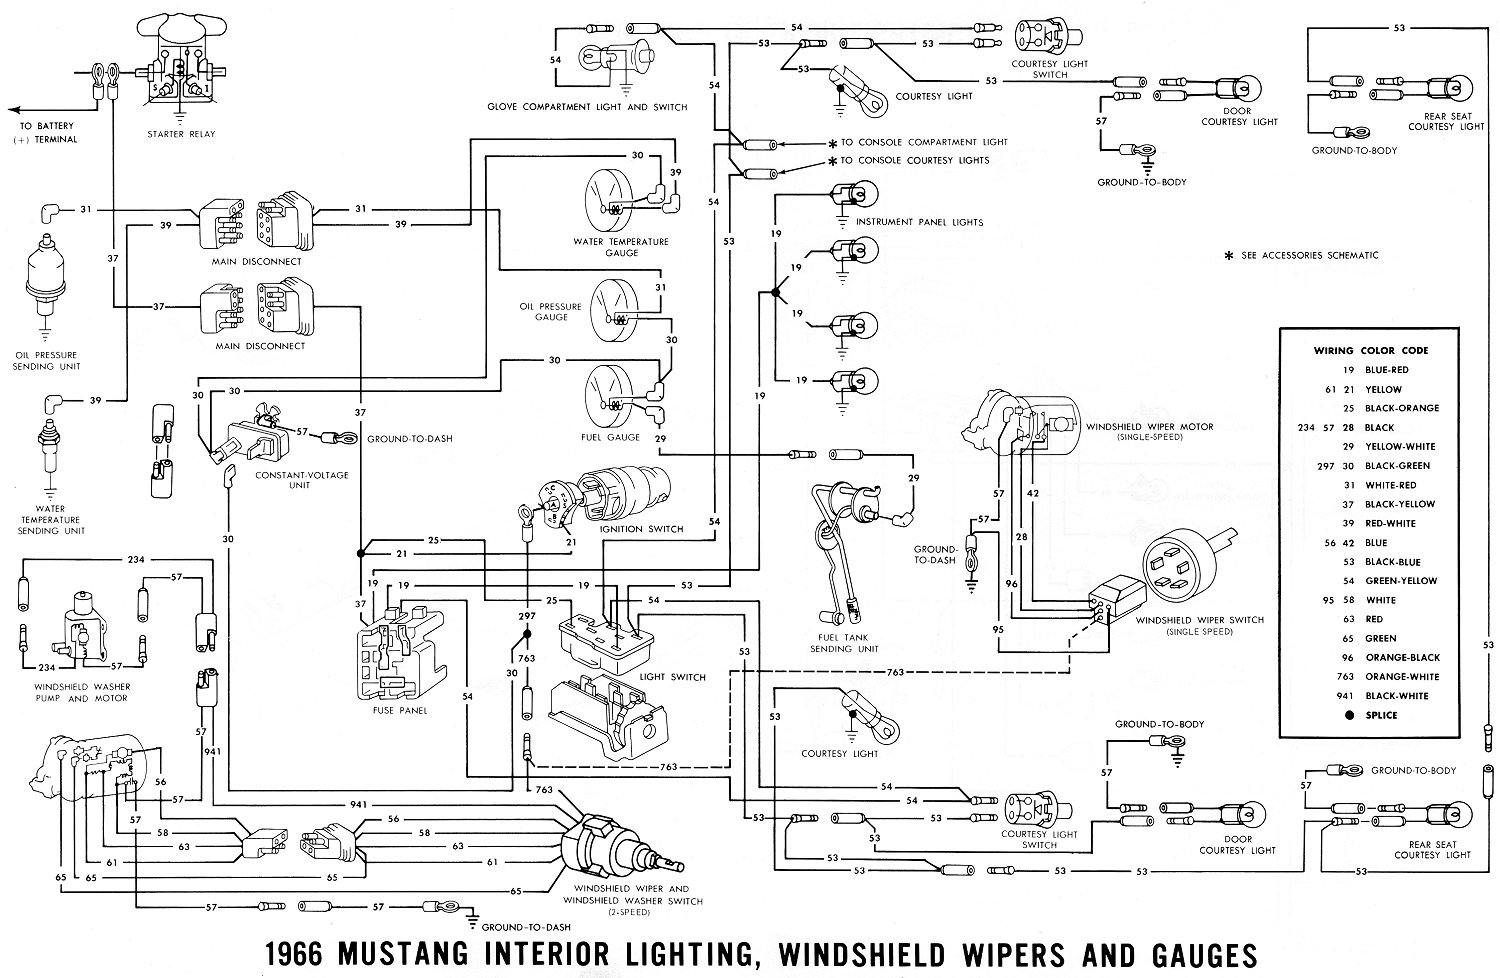 66inter1 1966 mustang wiring diagrams average joe restoration 1965 mustang under dash wiring diagram at love-stories.co